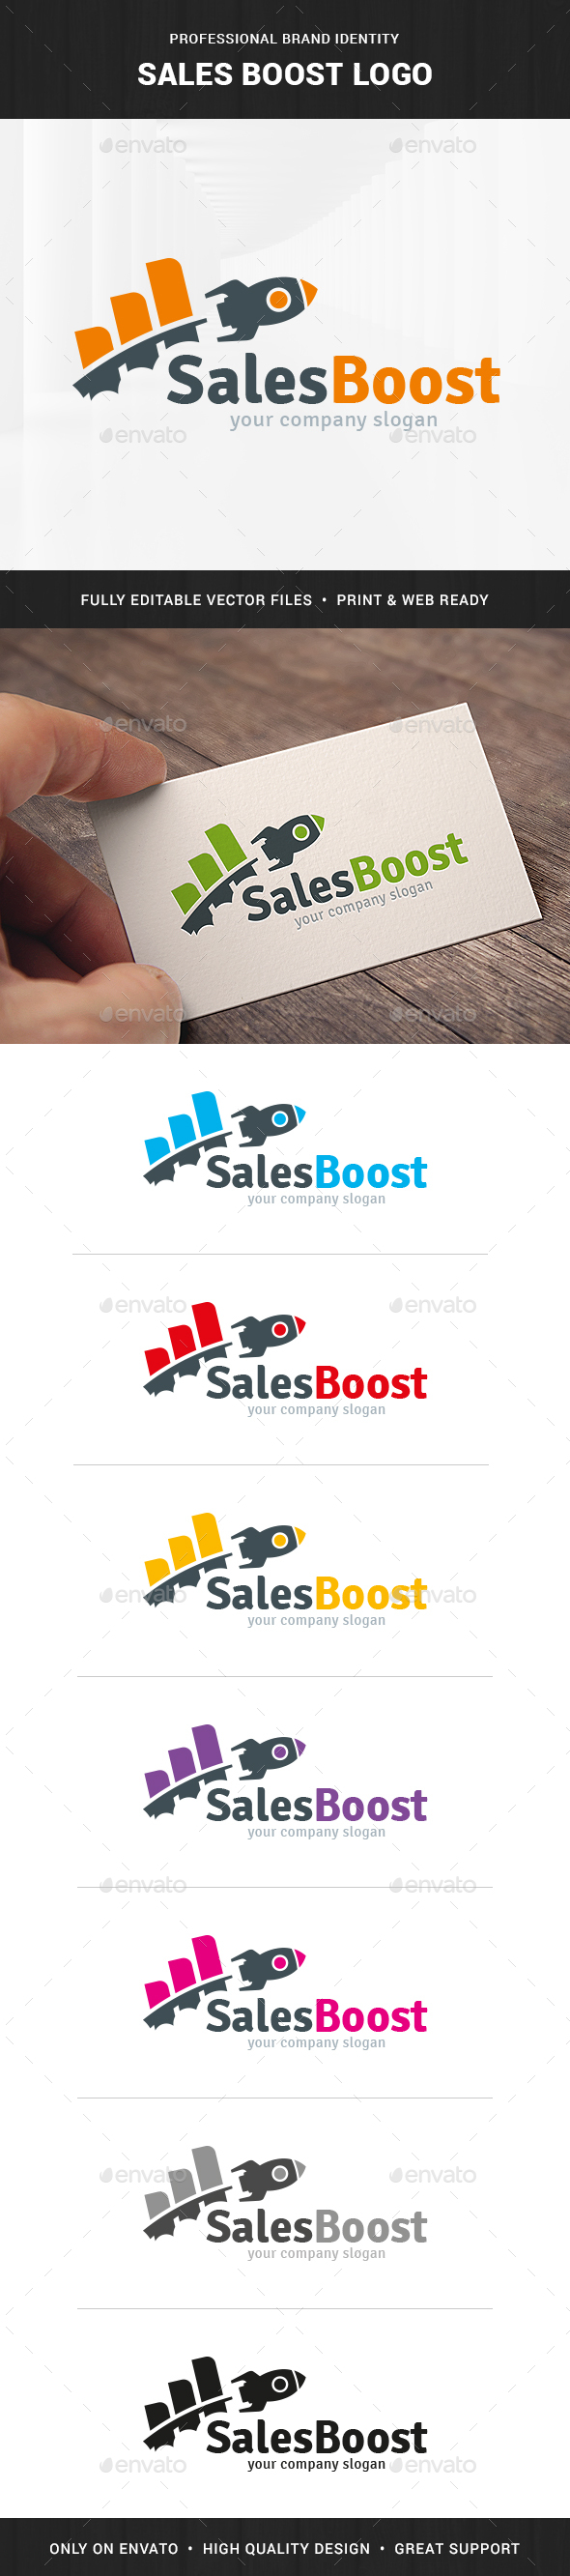 Sales Boost Logo Template